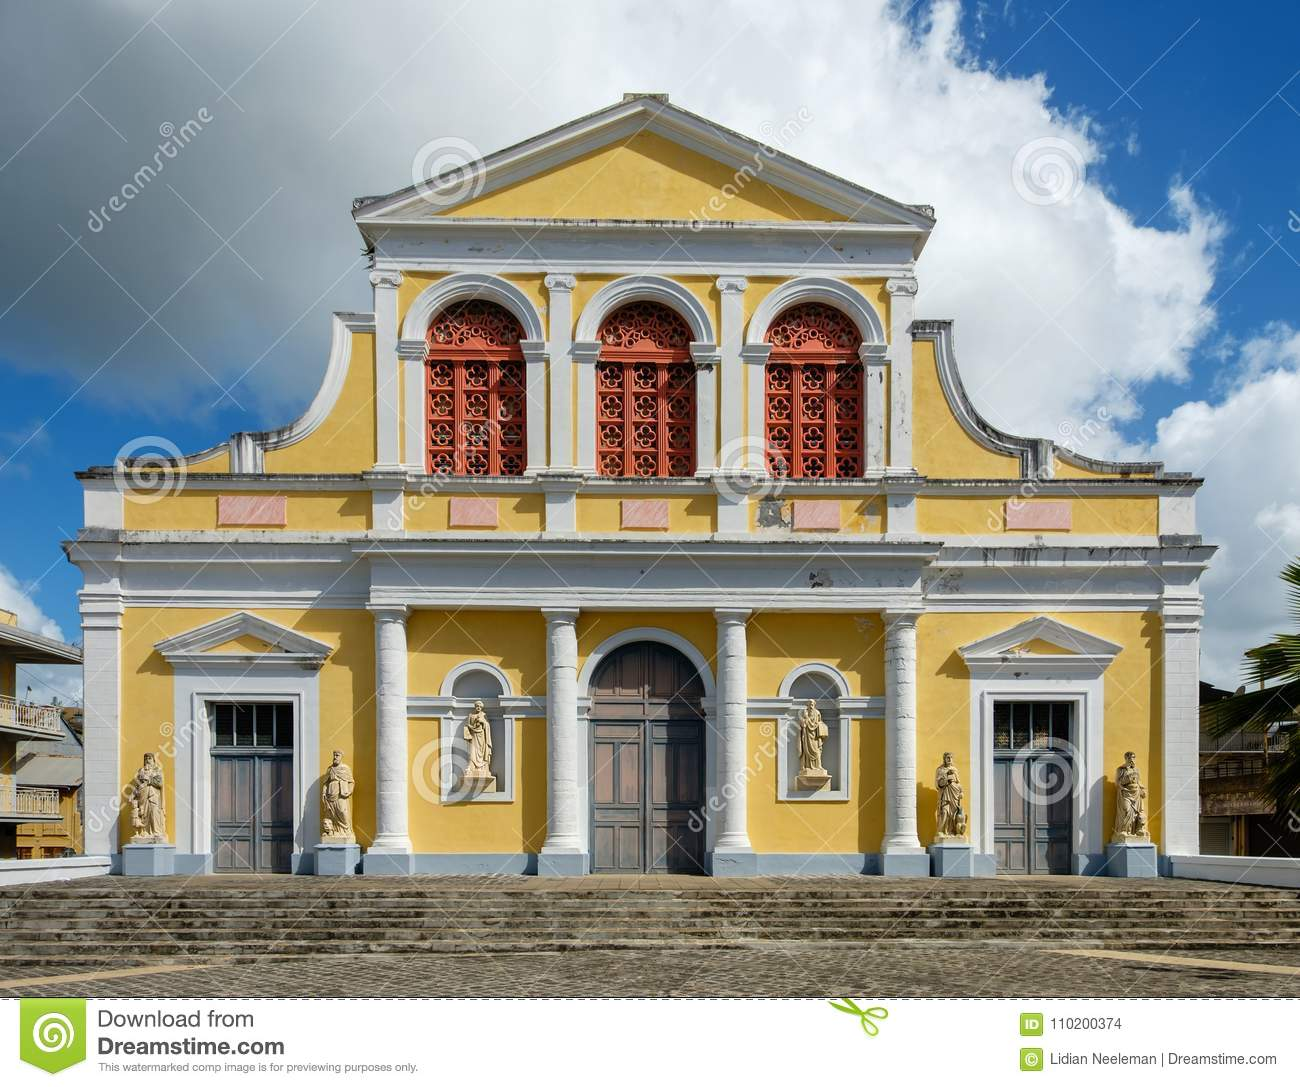 Catedral en Pointe-A-Pitre - Guadalupe